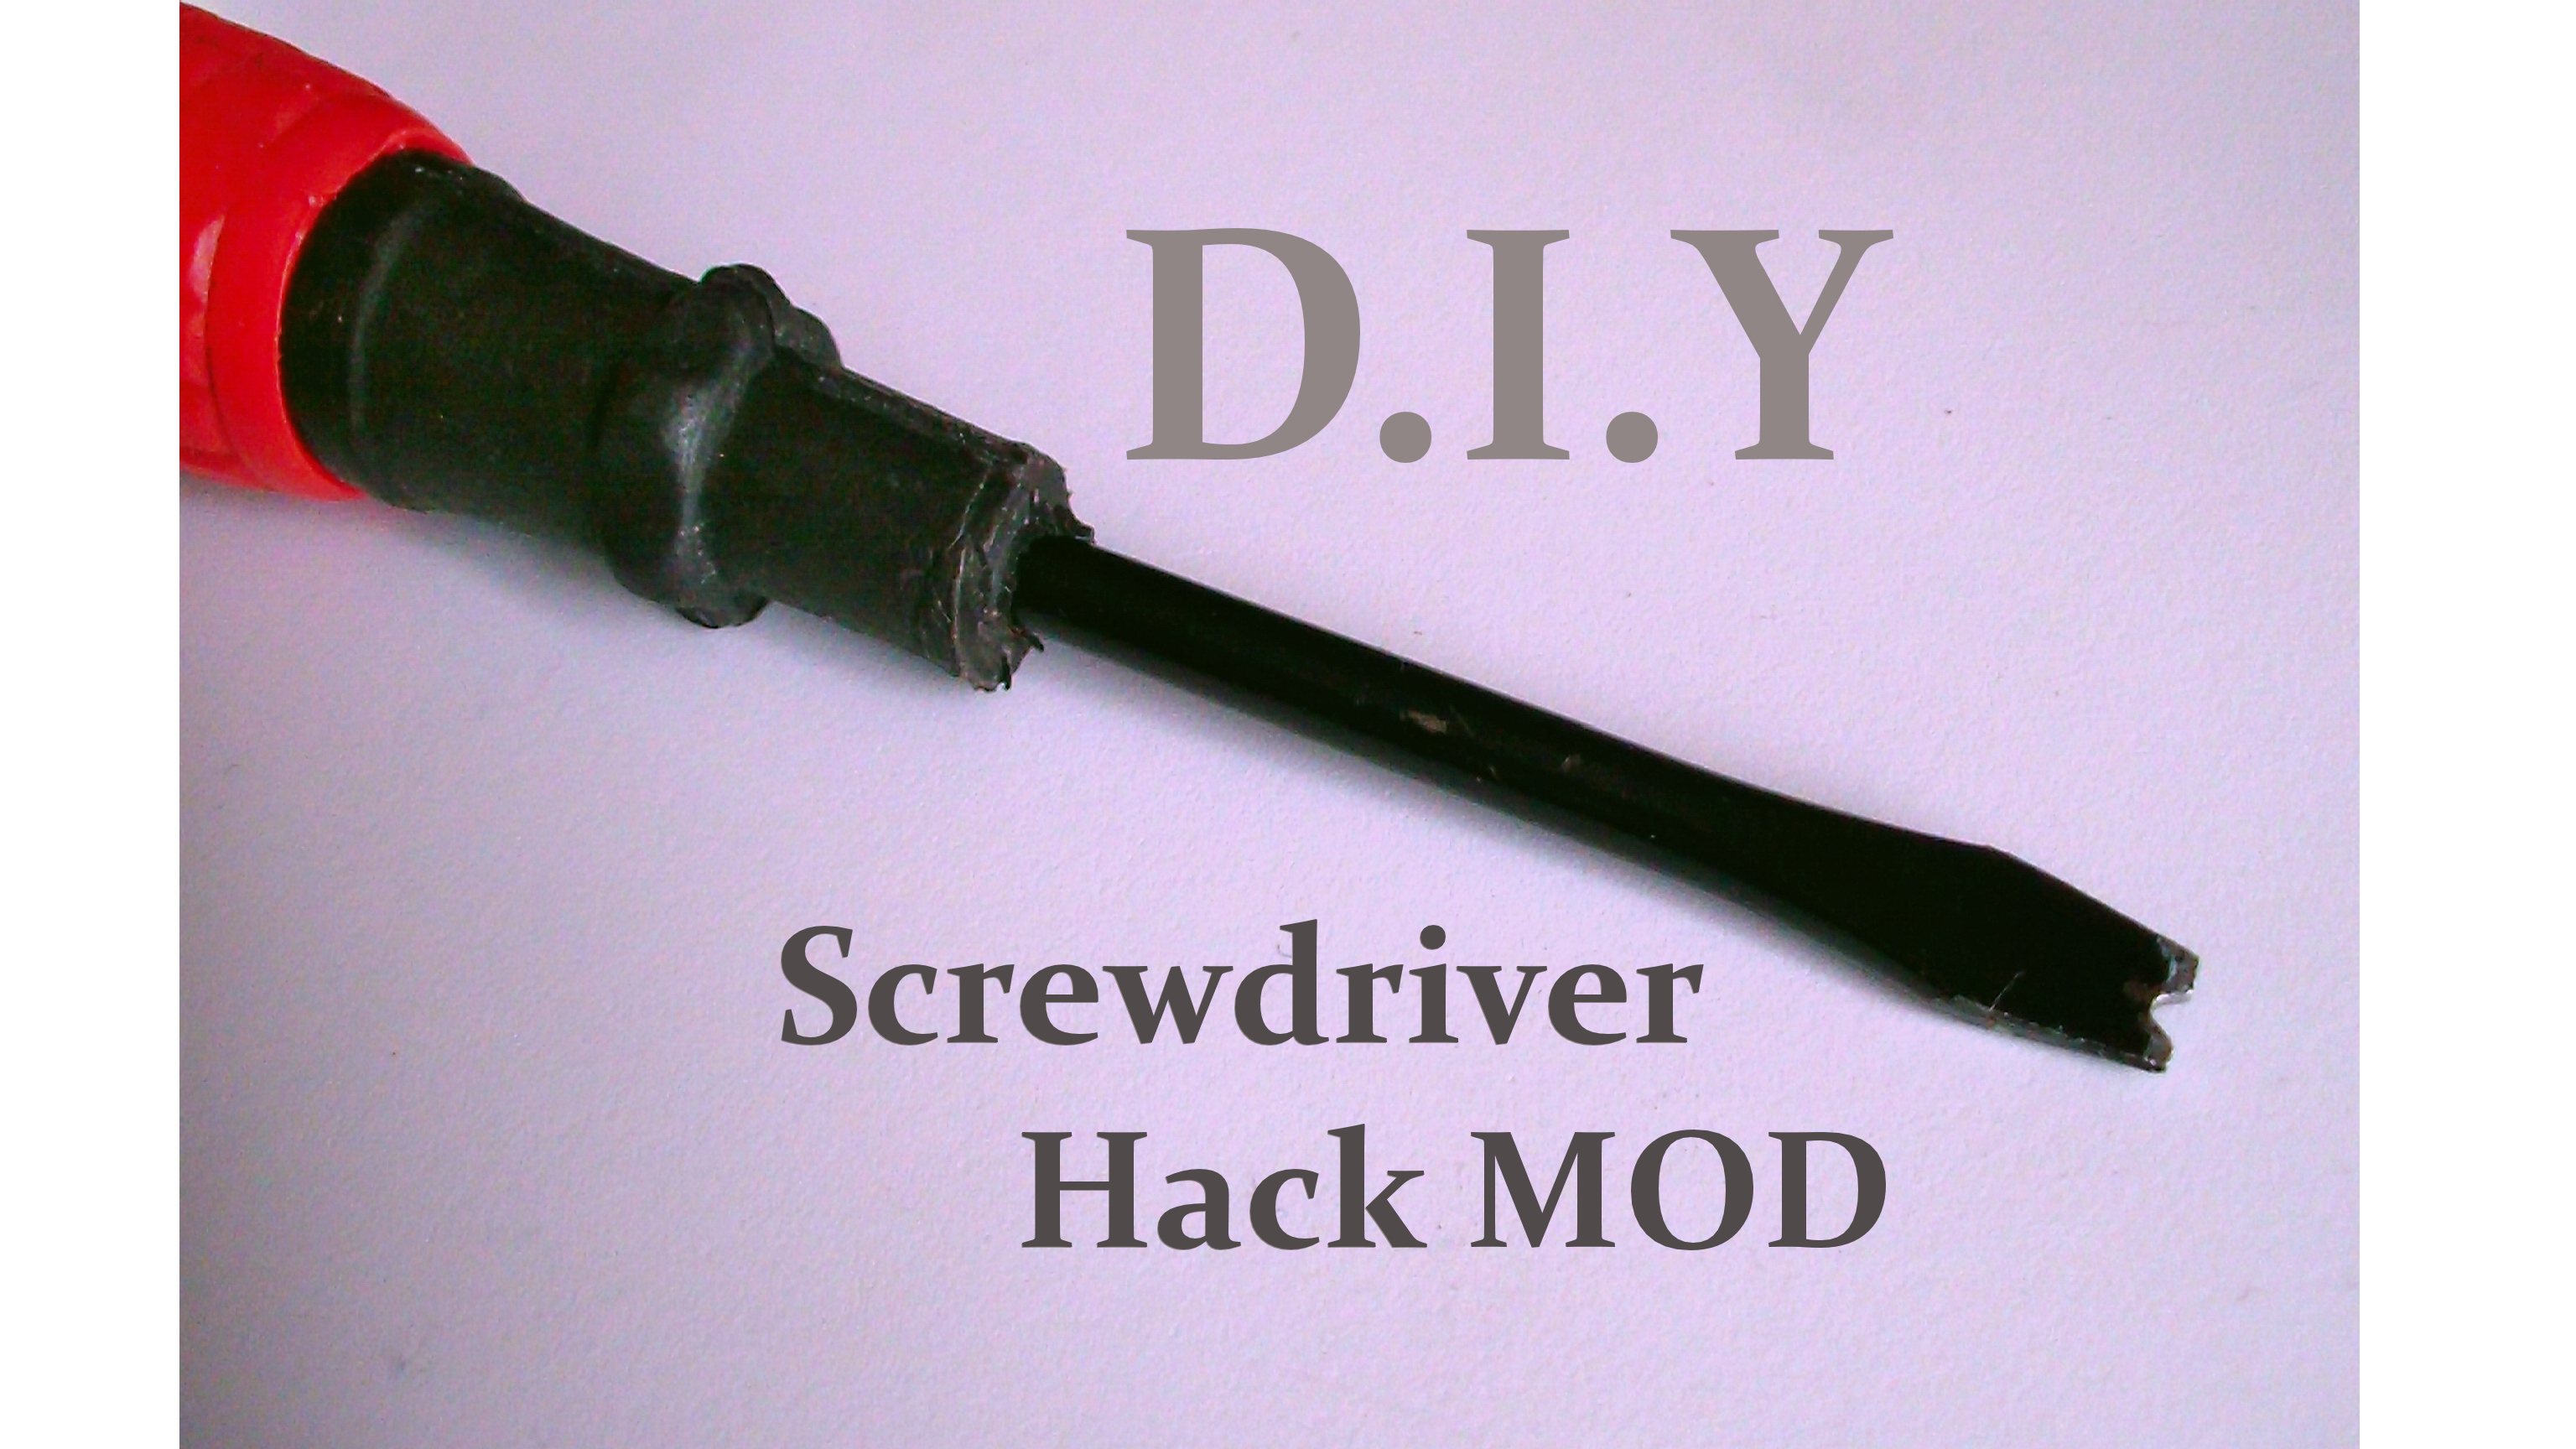 DIY Screwdriver Hack